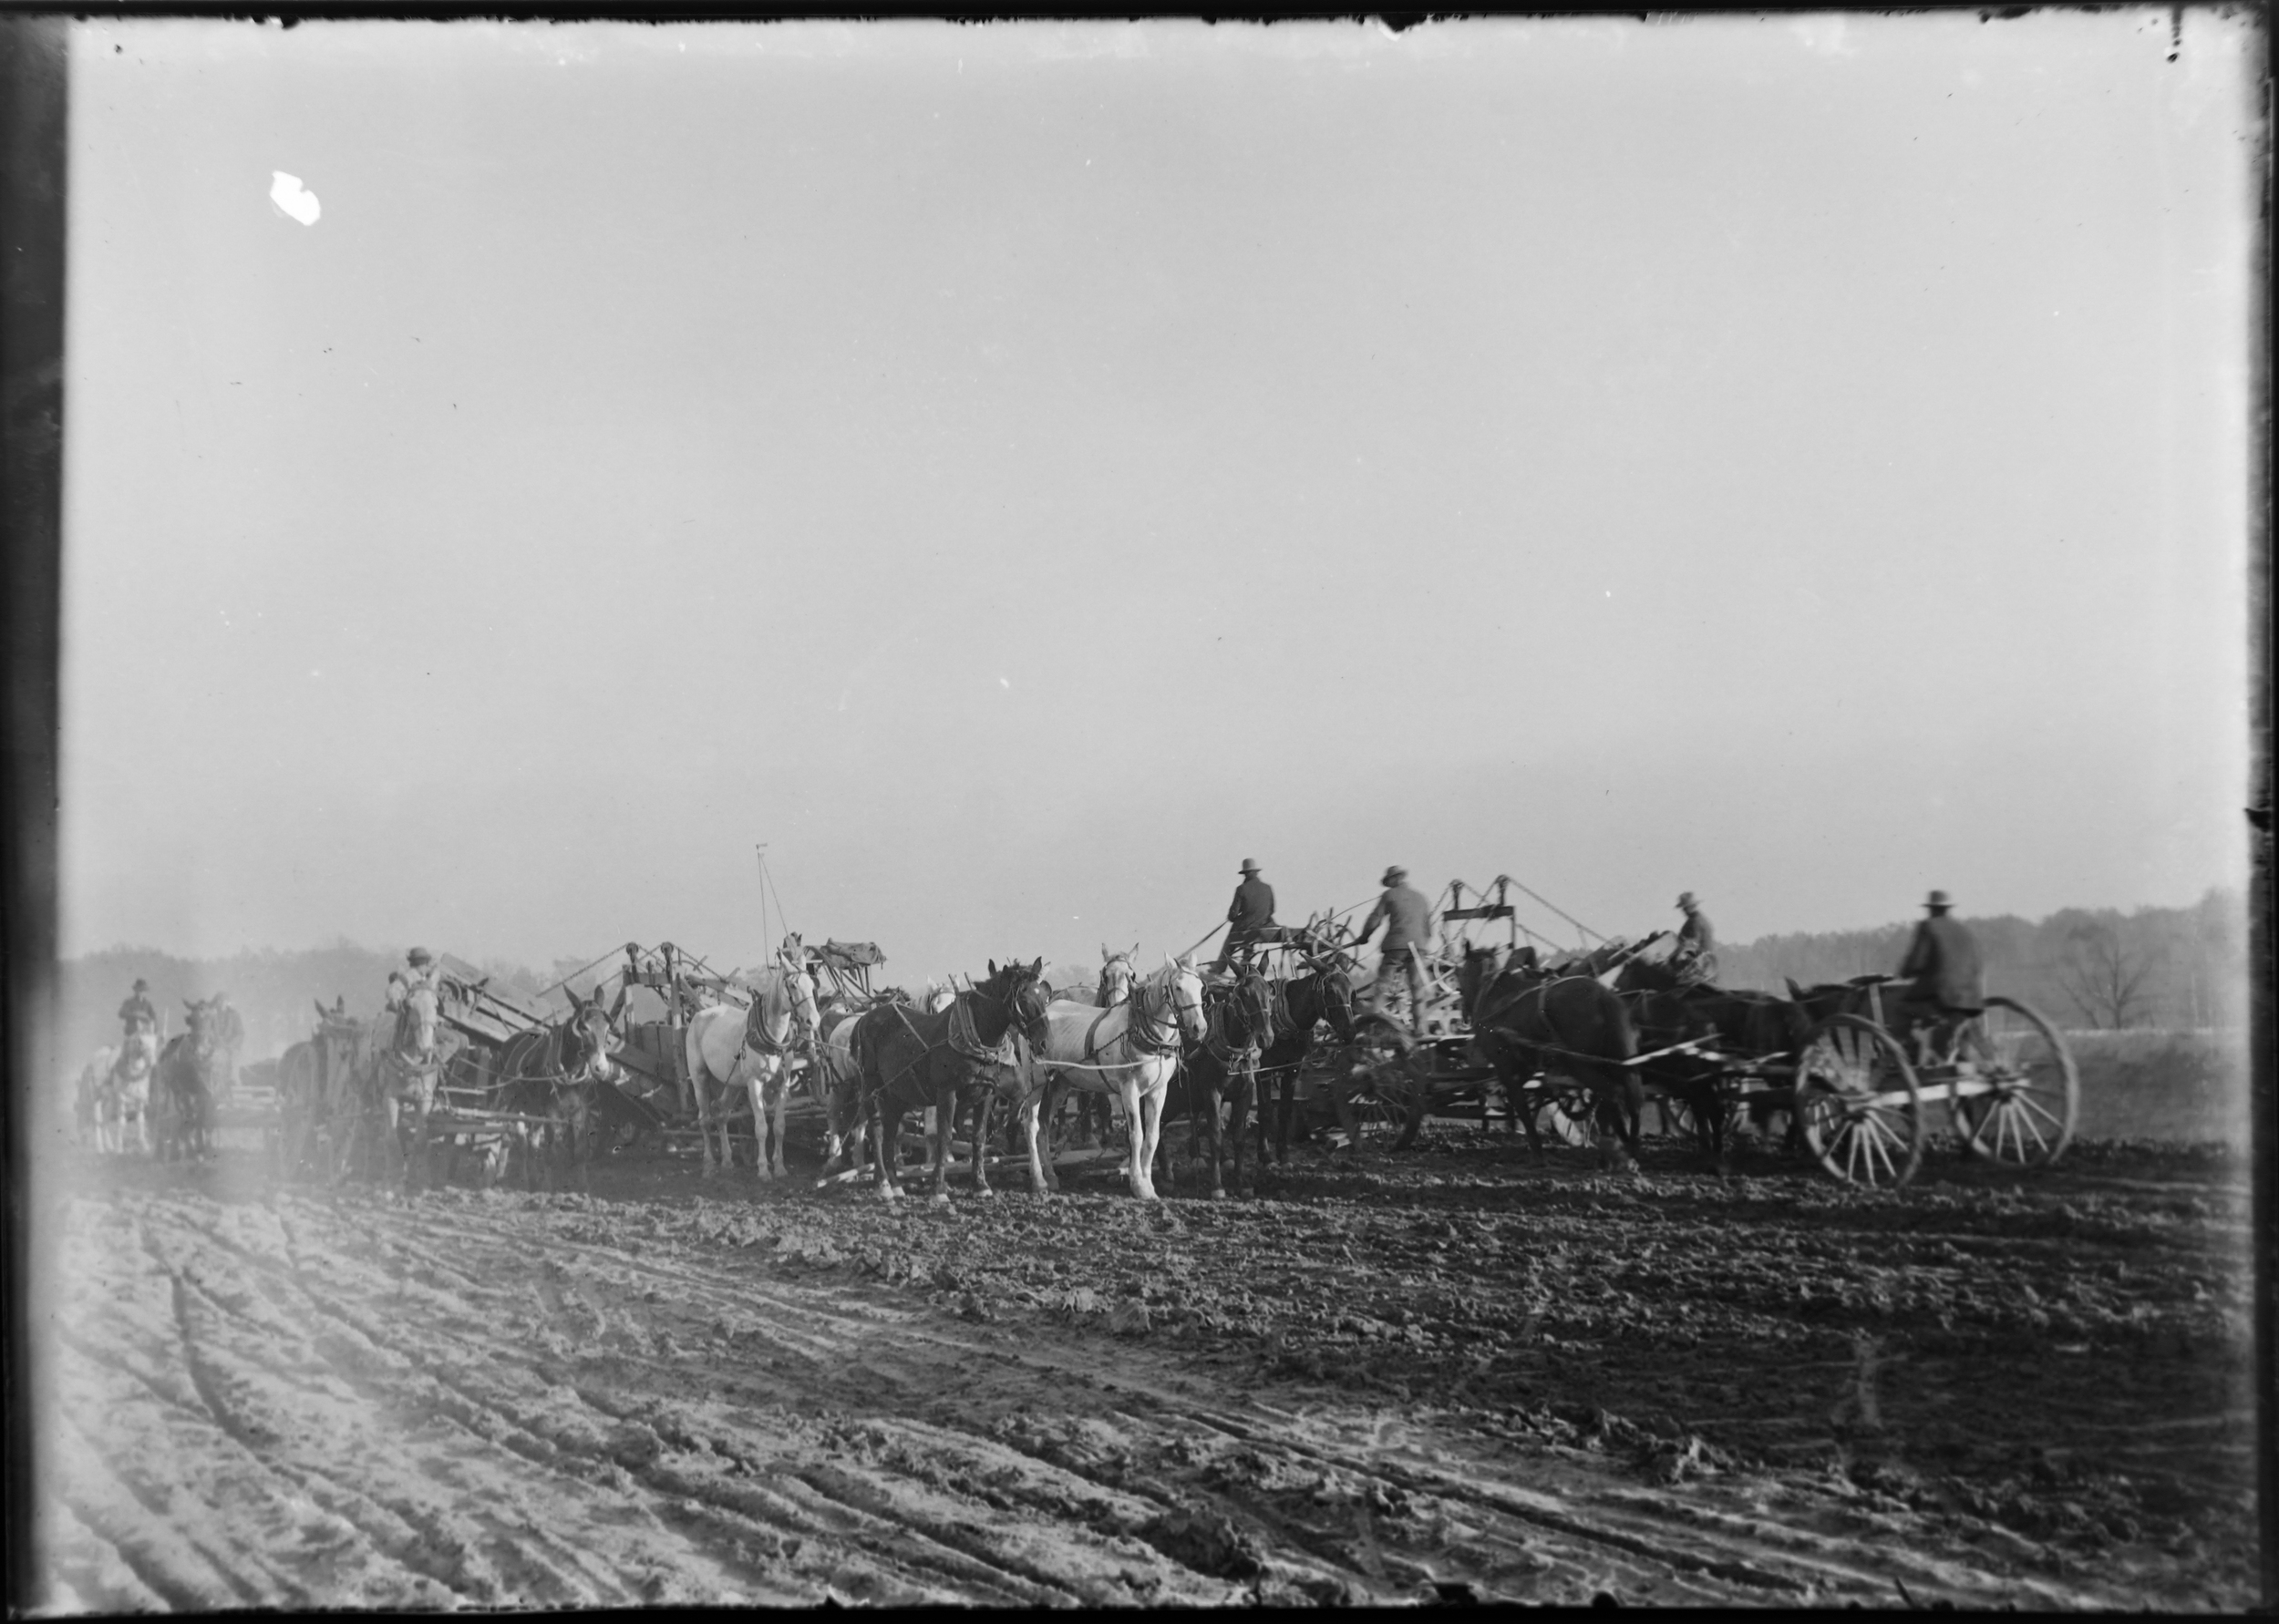 A team of horses grade the land for the coming construction of the 1904 World's Fair.  Photo c. 1901-2.